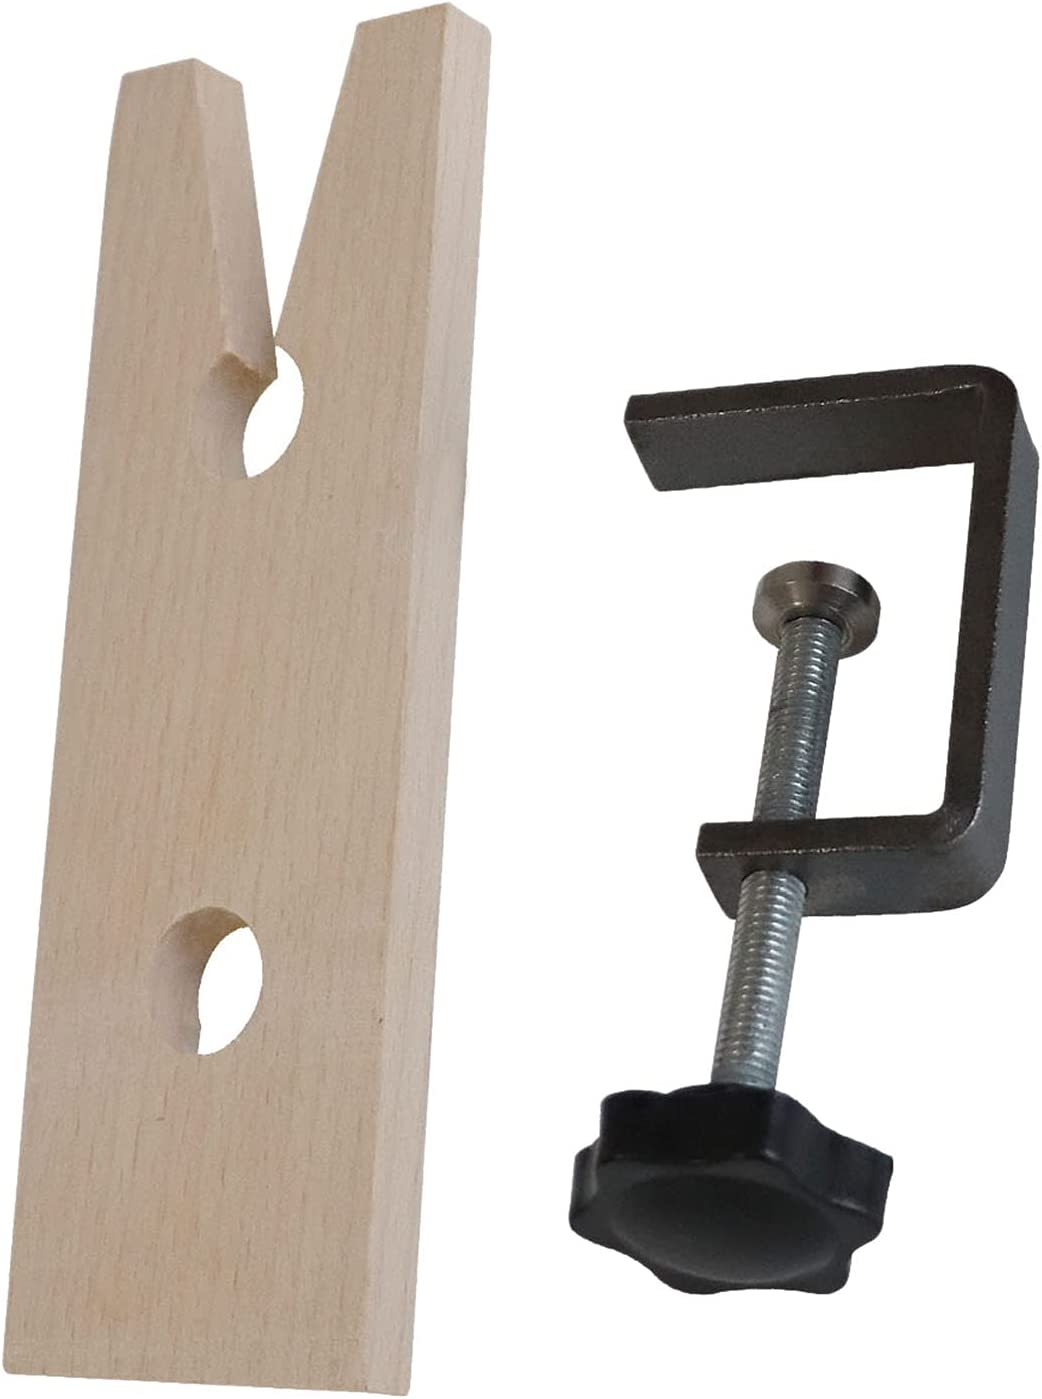 NEWMIND Adjustable Bench Pin Clamp Vice V Workbench 2021 model Drillin Clip Clearance SALE! Limited time!